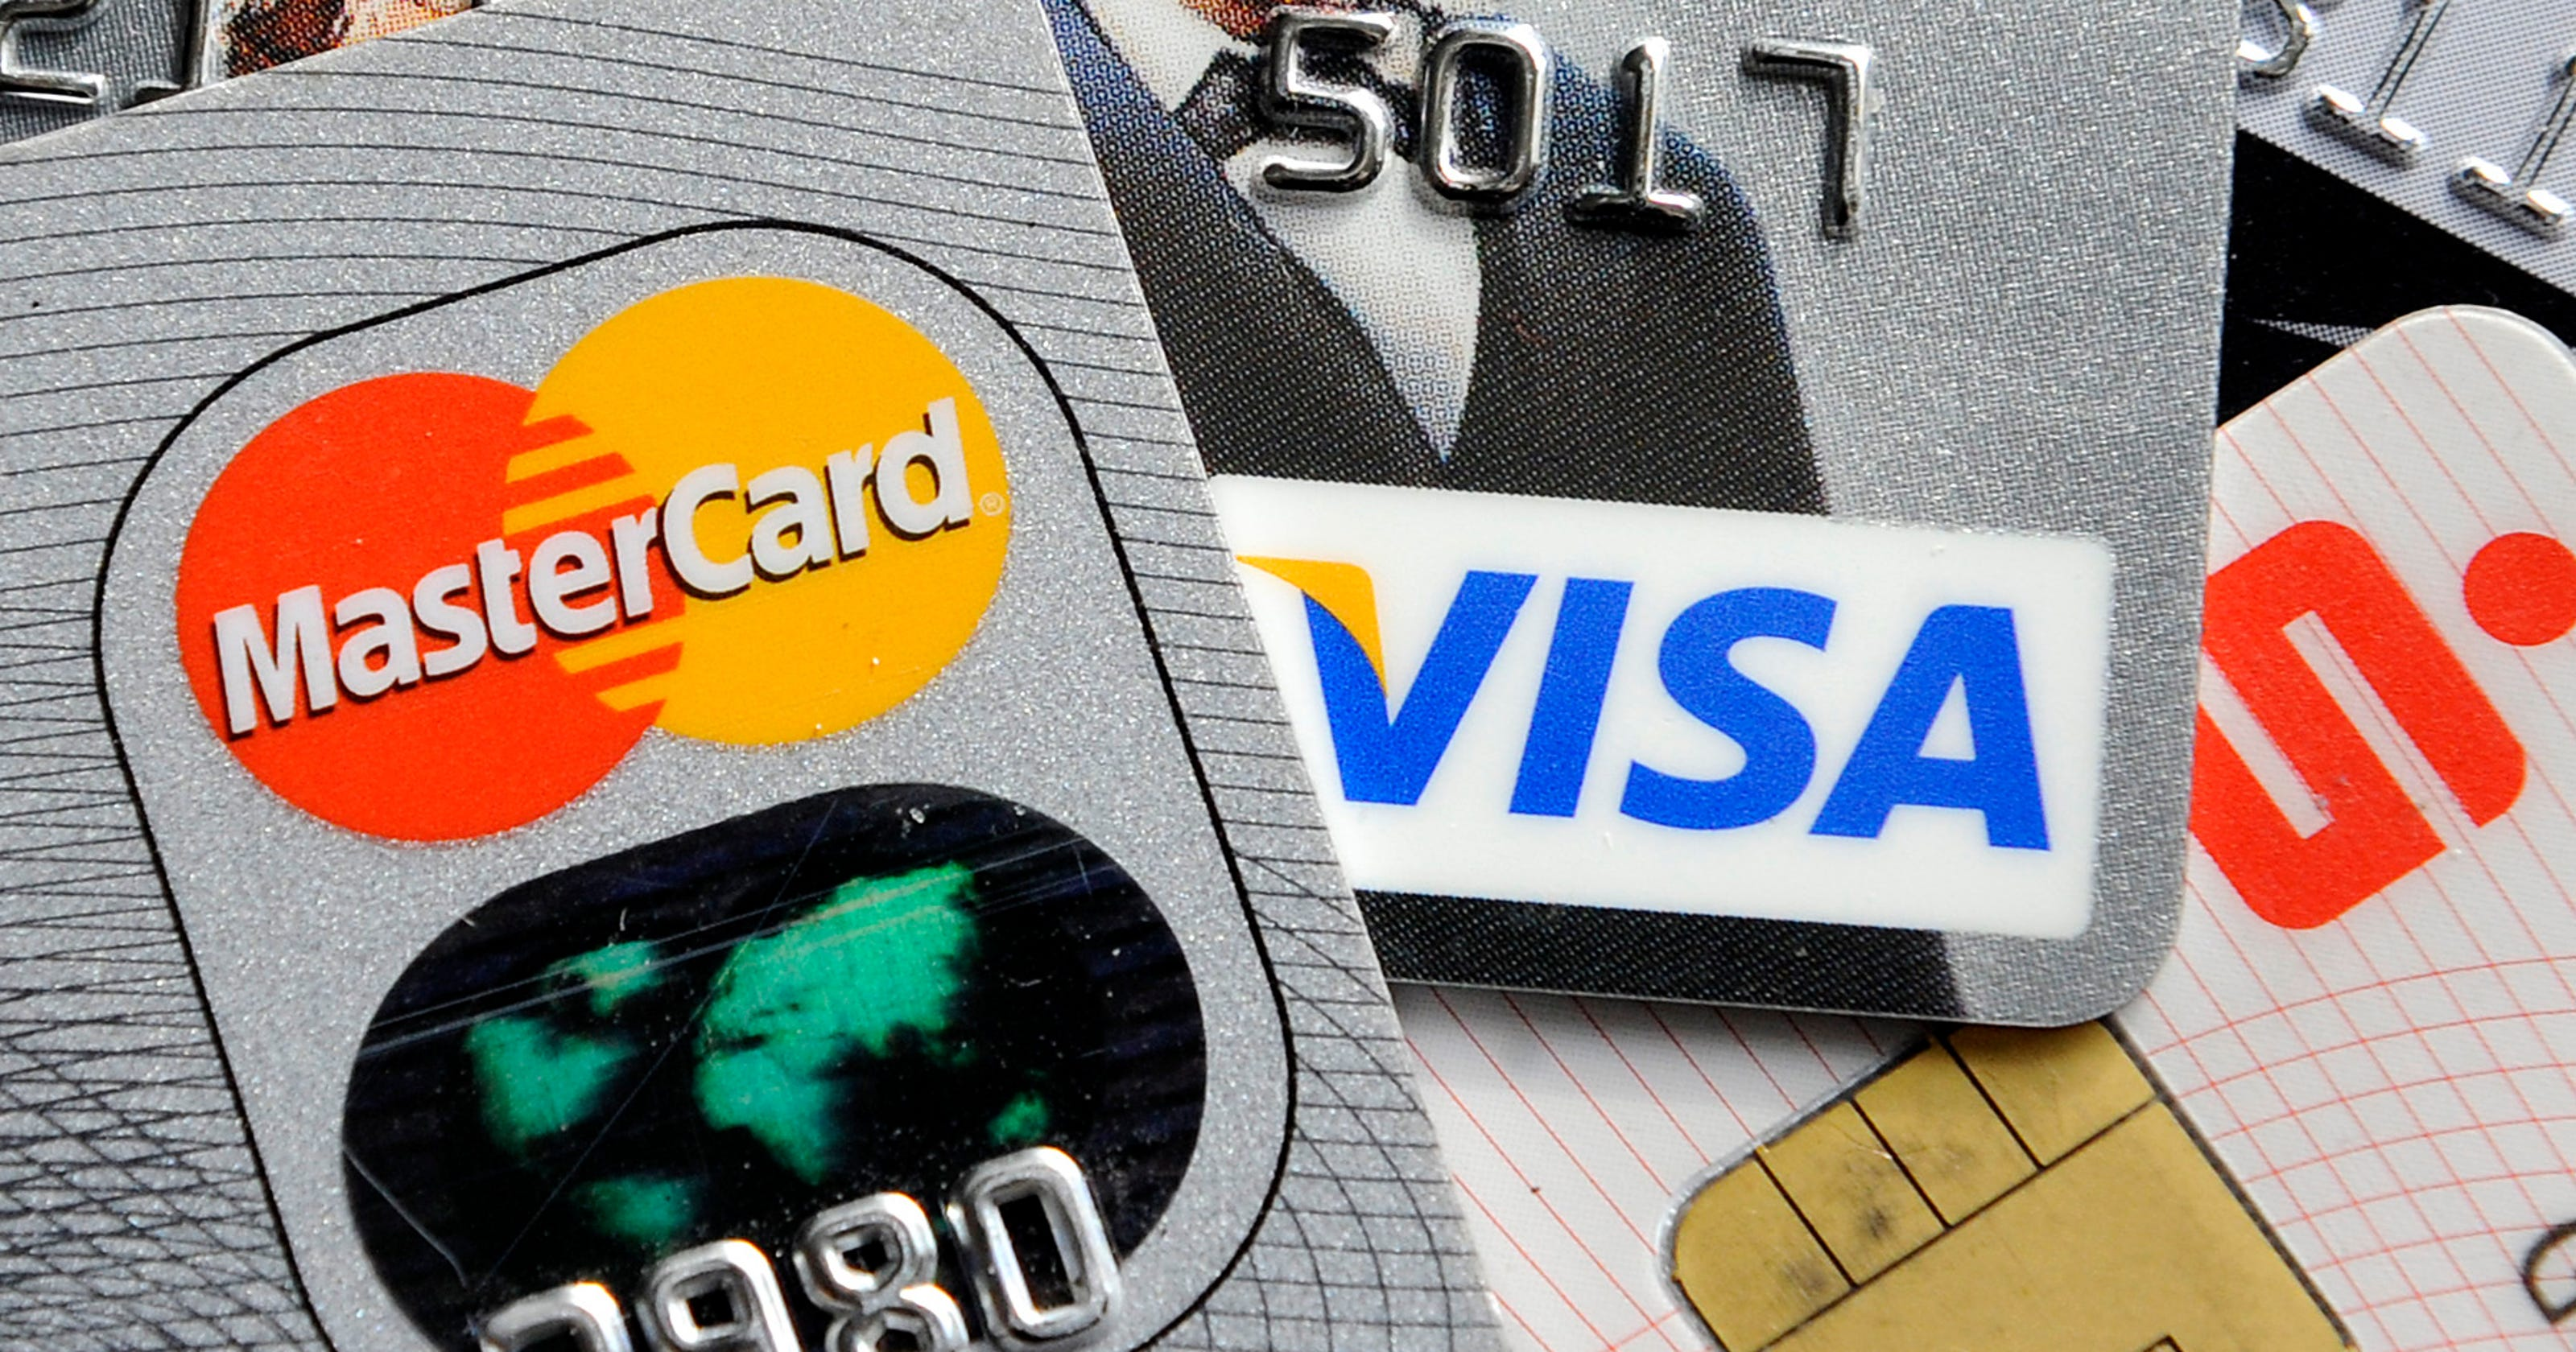 Paying rent with a credit card can make sense